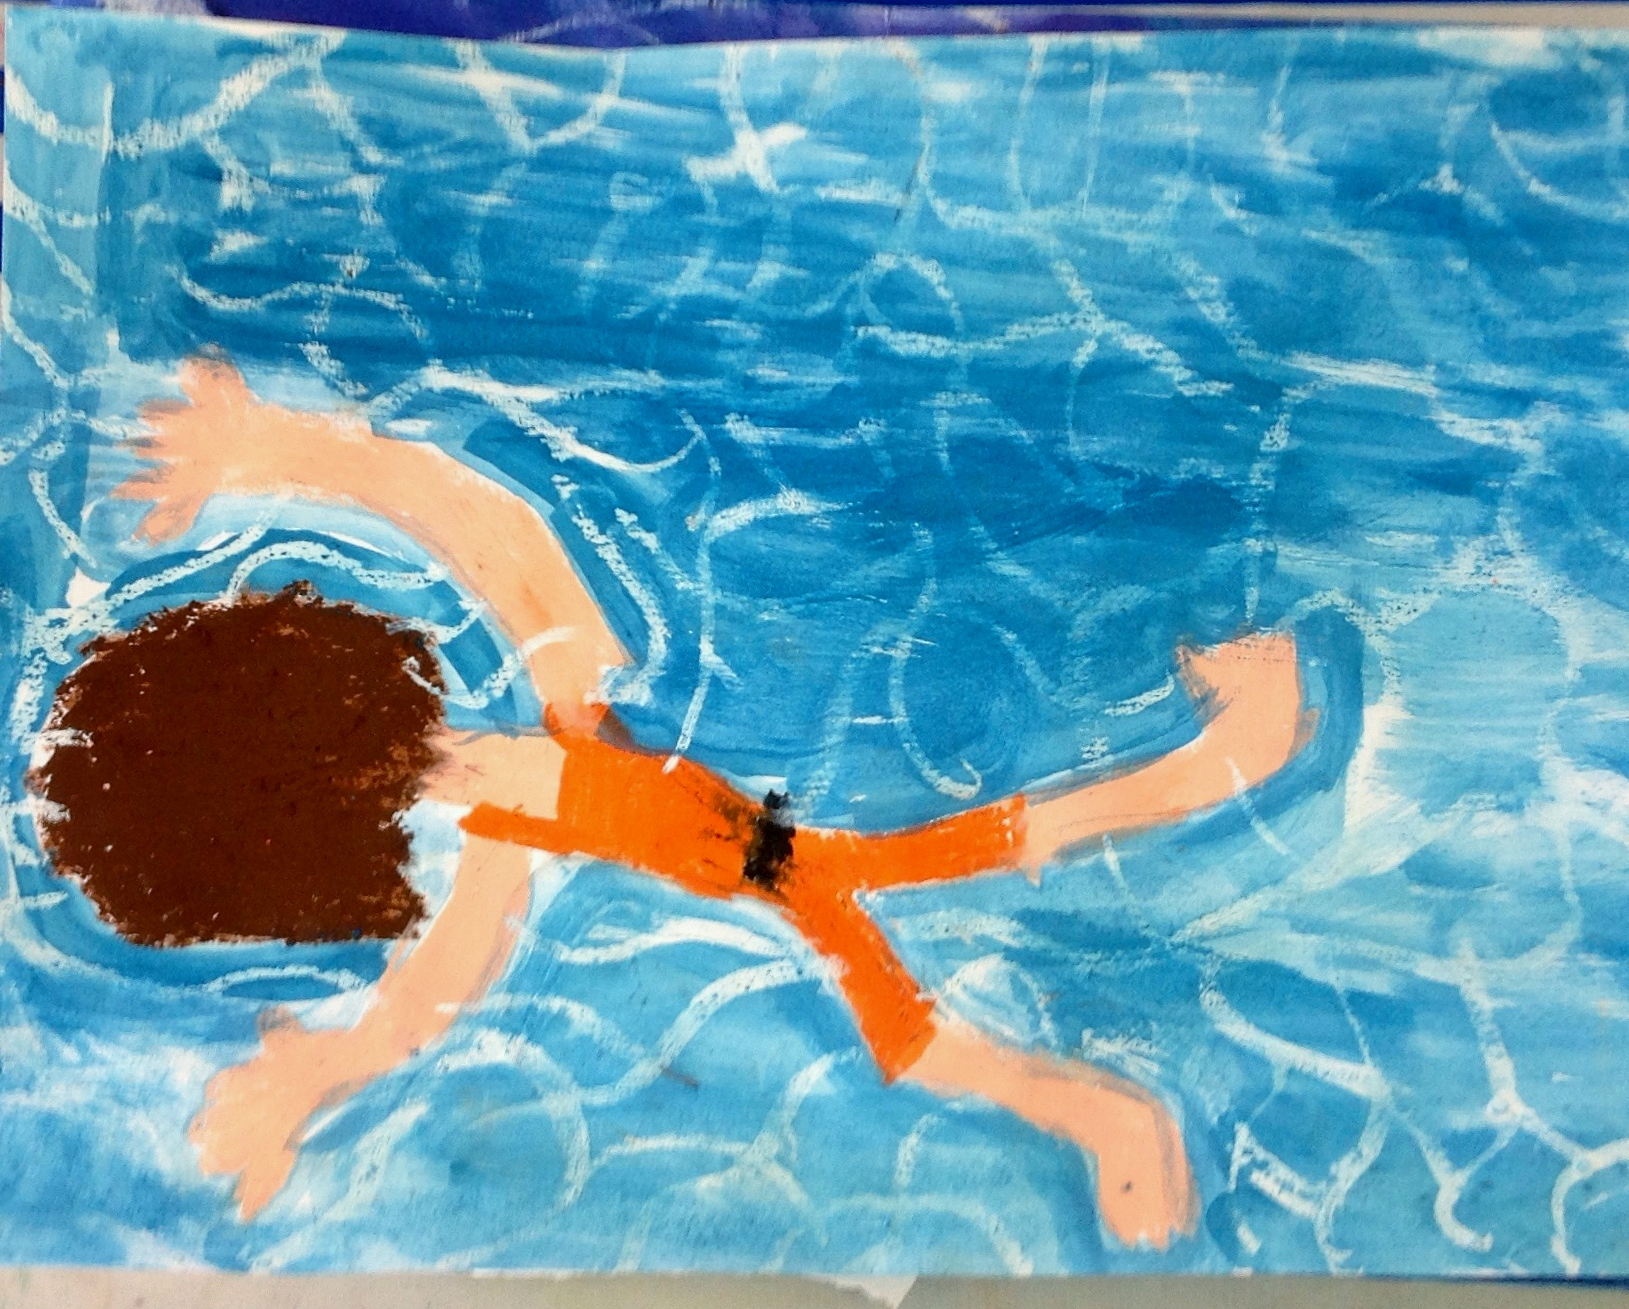 Grade 3 David Hockney style swimmer painting drawing 12